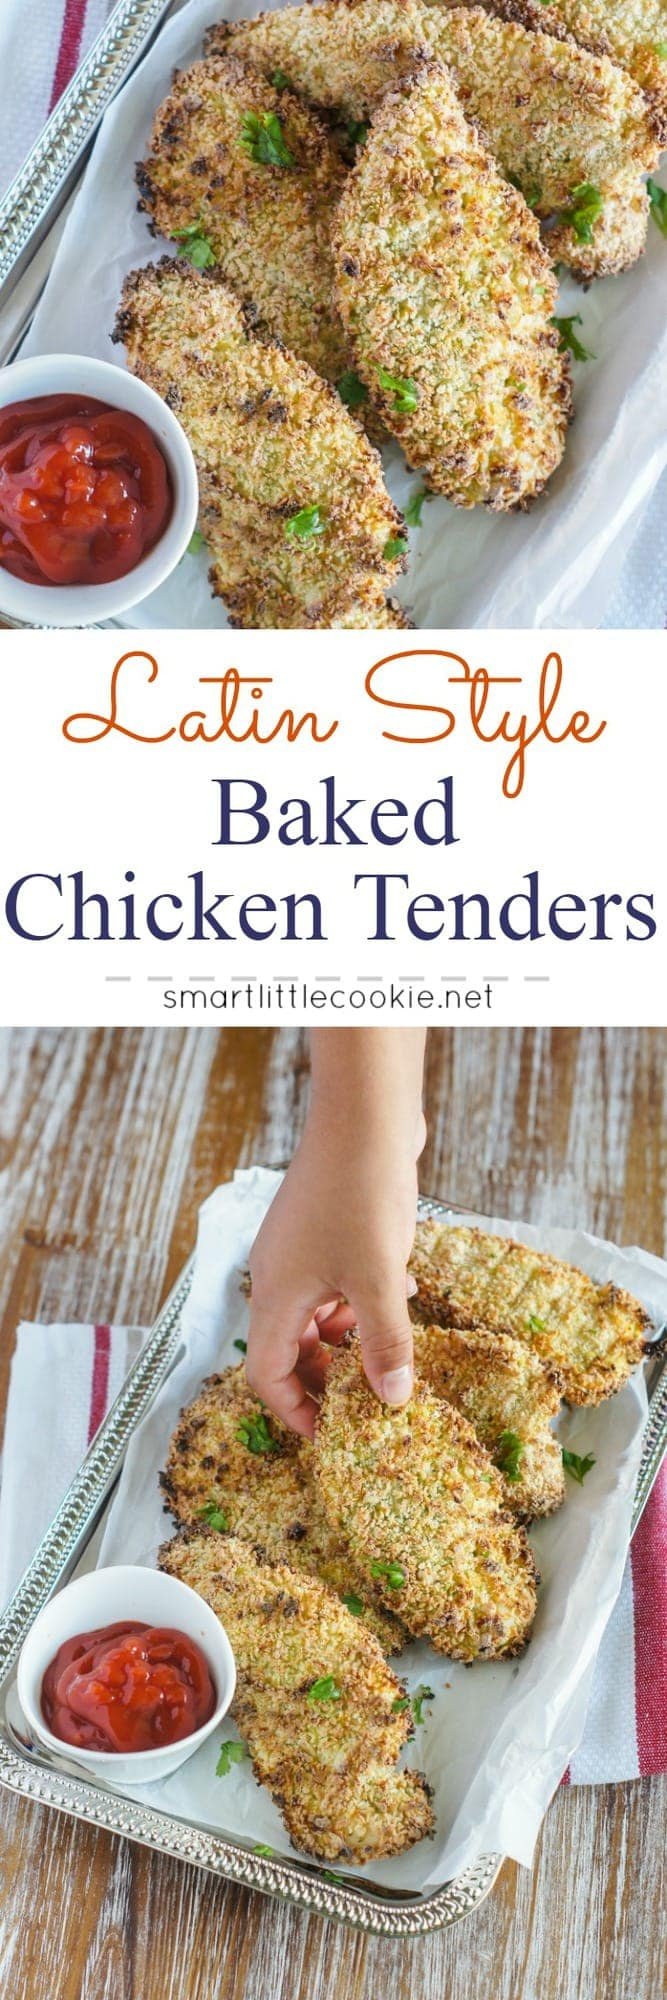 Pinterest graphic. Baked chicken tenders with text overlay.